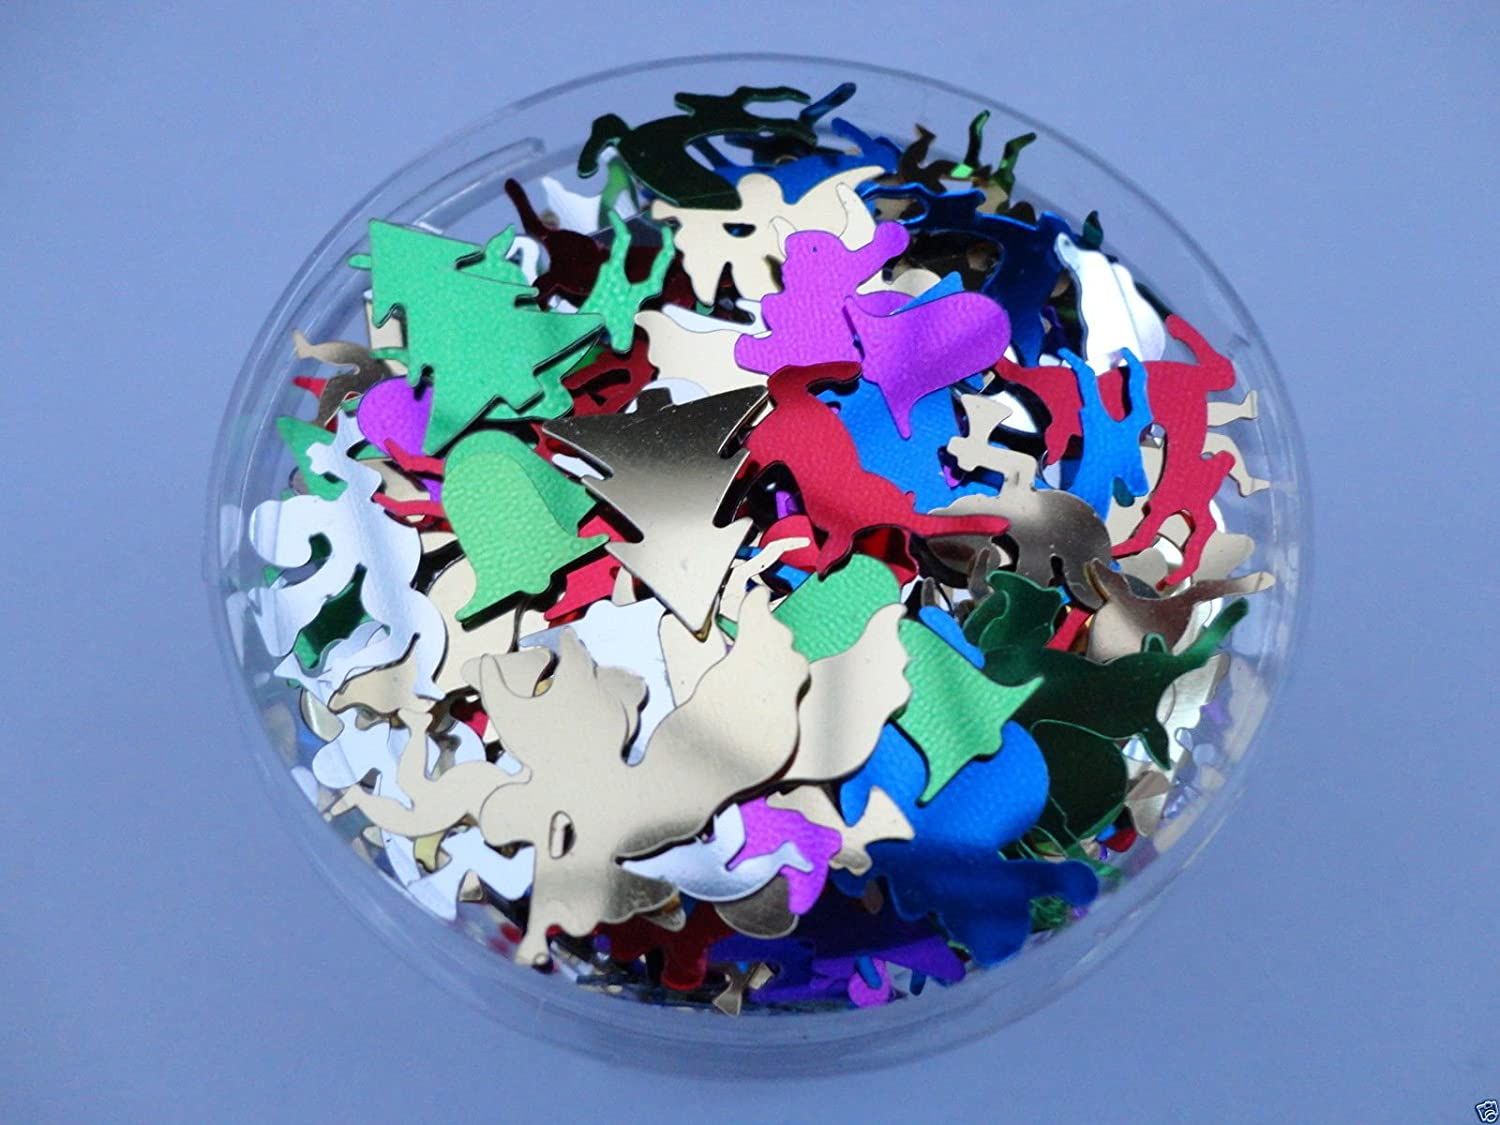 Christmas Mix Craft Sequins Confetti Xmas Party Card Making Art 4/10/20/50G - Weight: 10G a2bsales